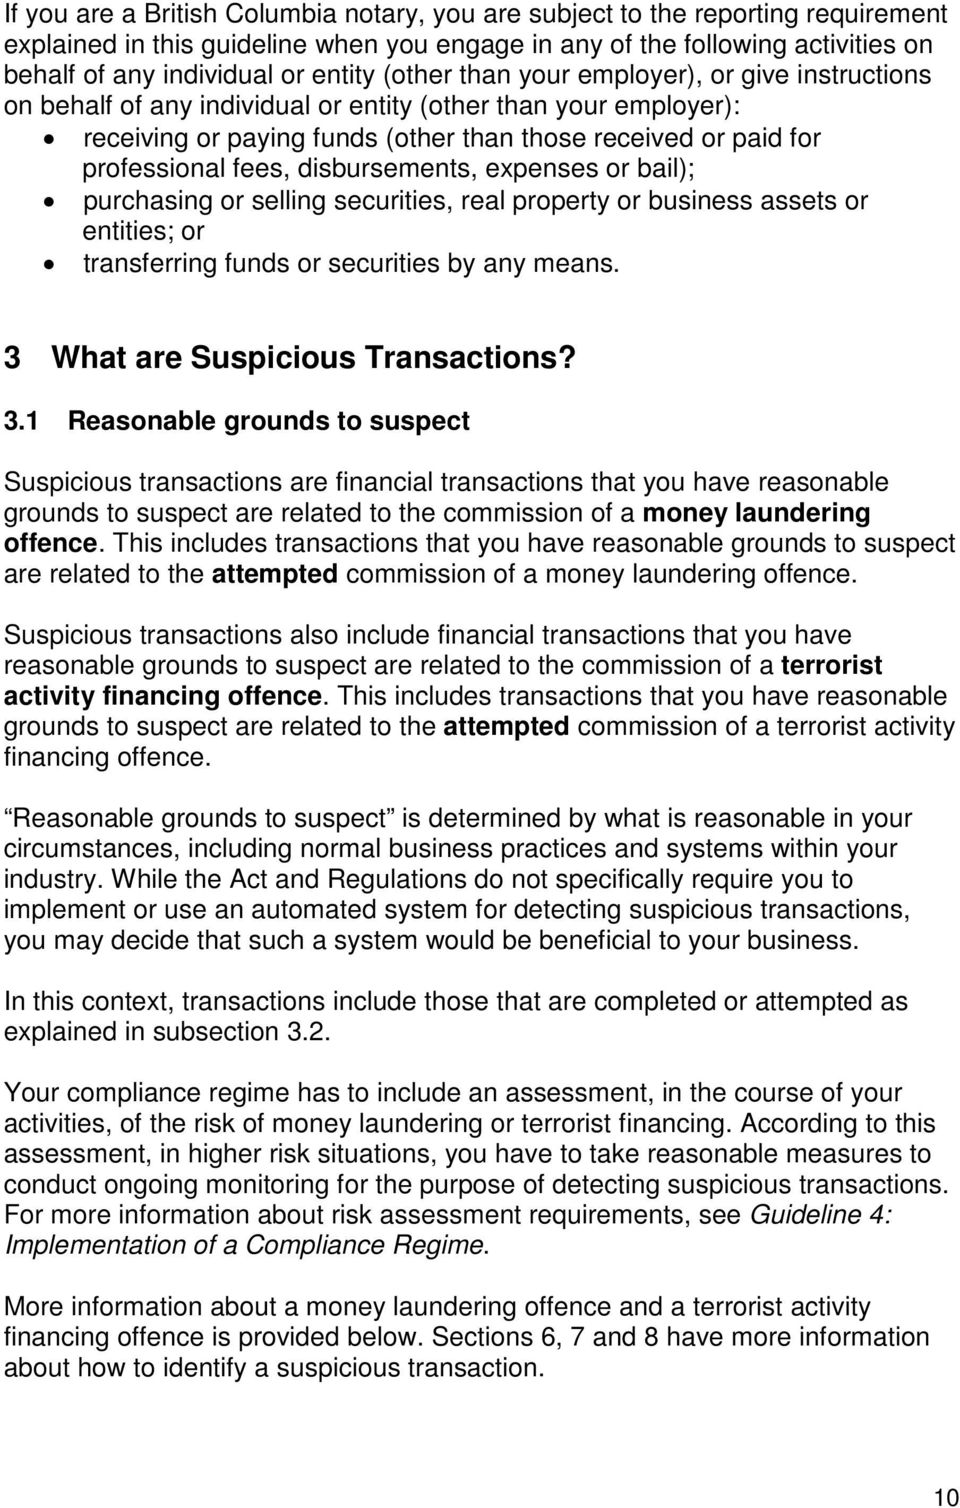 disbursements, expenses or bail); purchasing or selling securities, real property or business assets or entities; or transferring funds or securities by any means. 3 What are Suspicious Transactions?